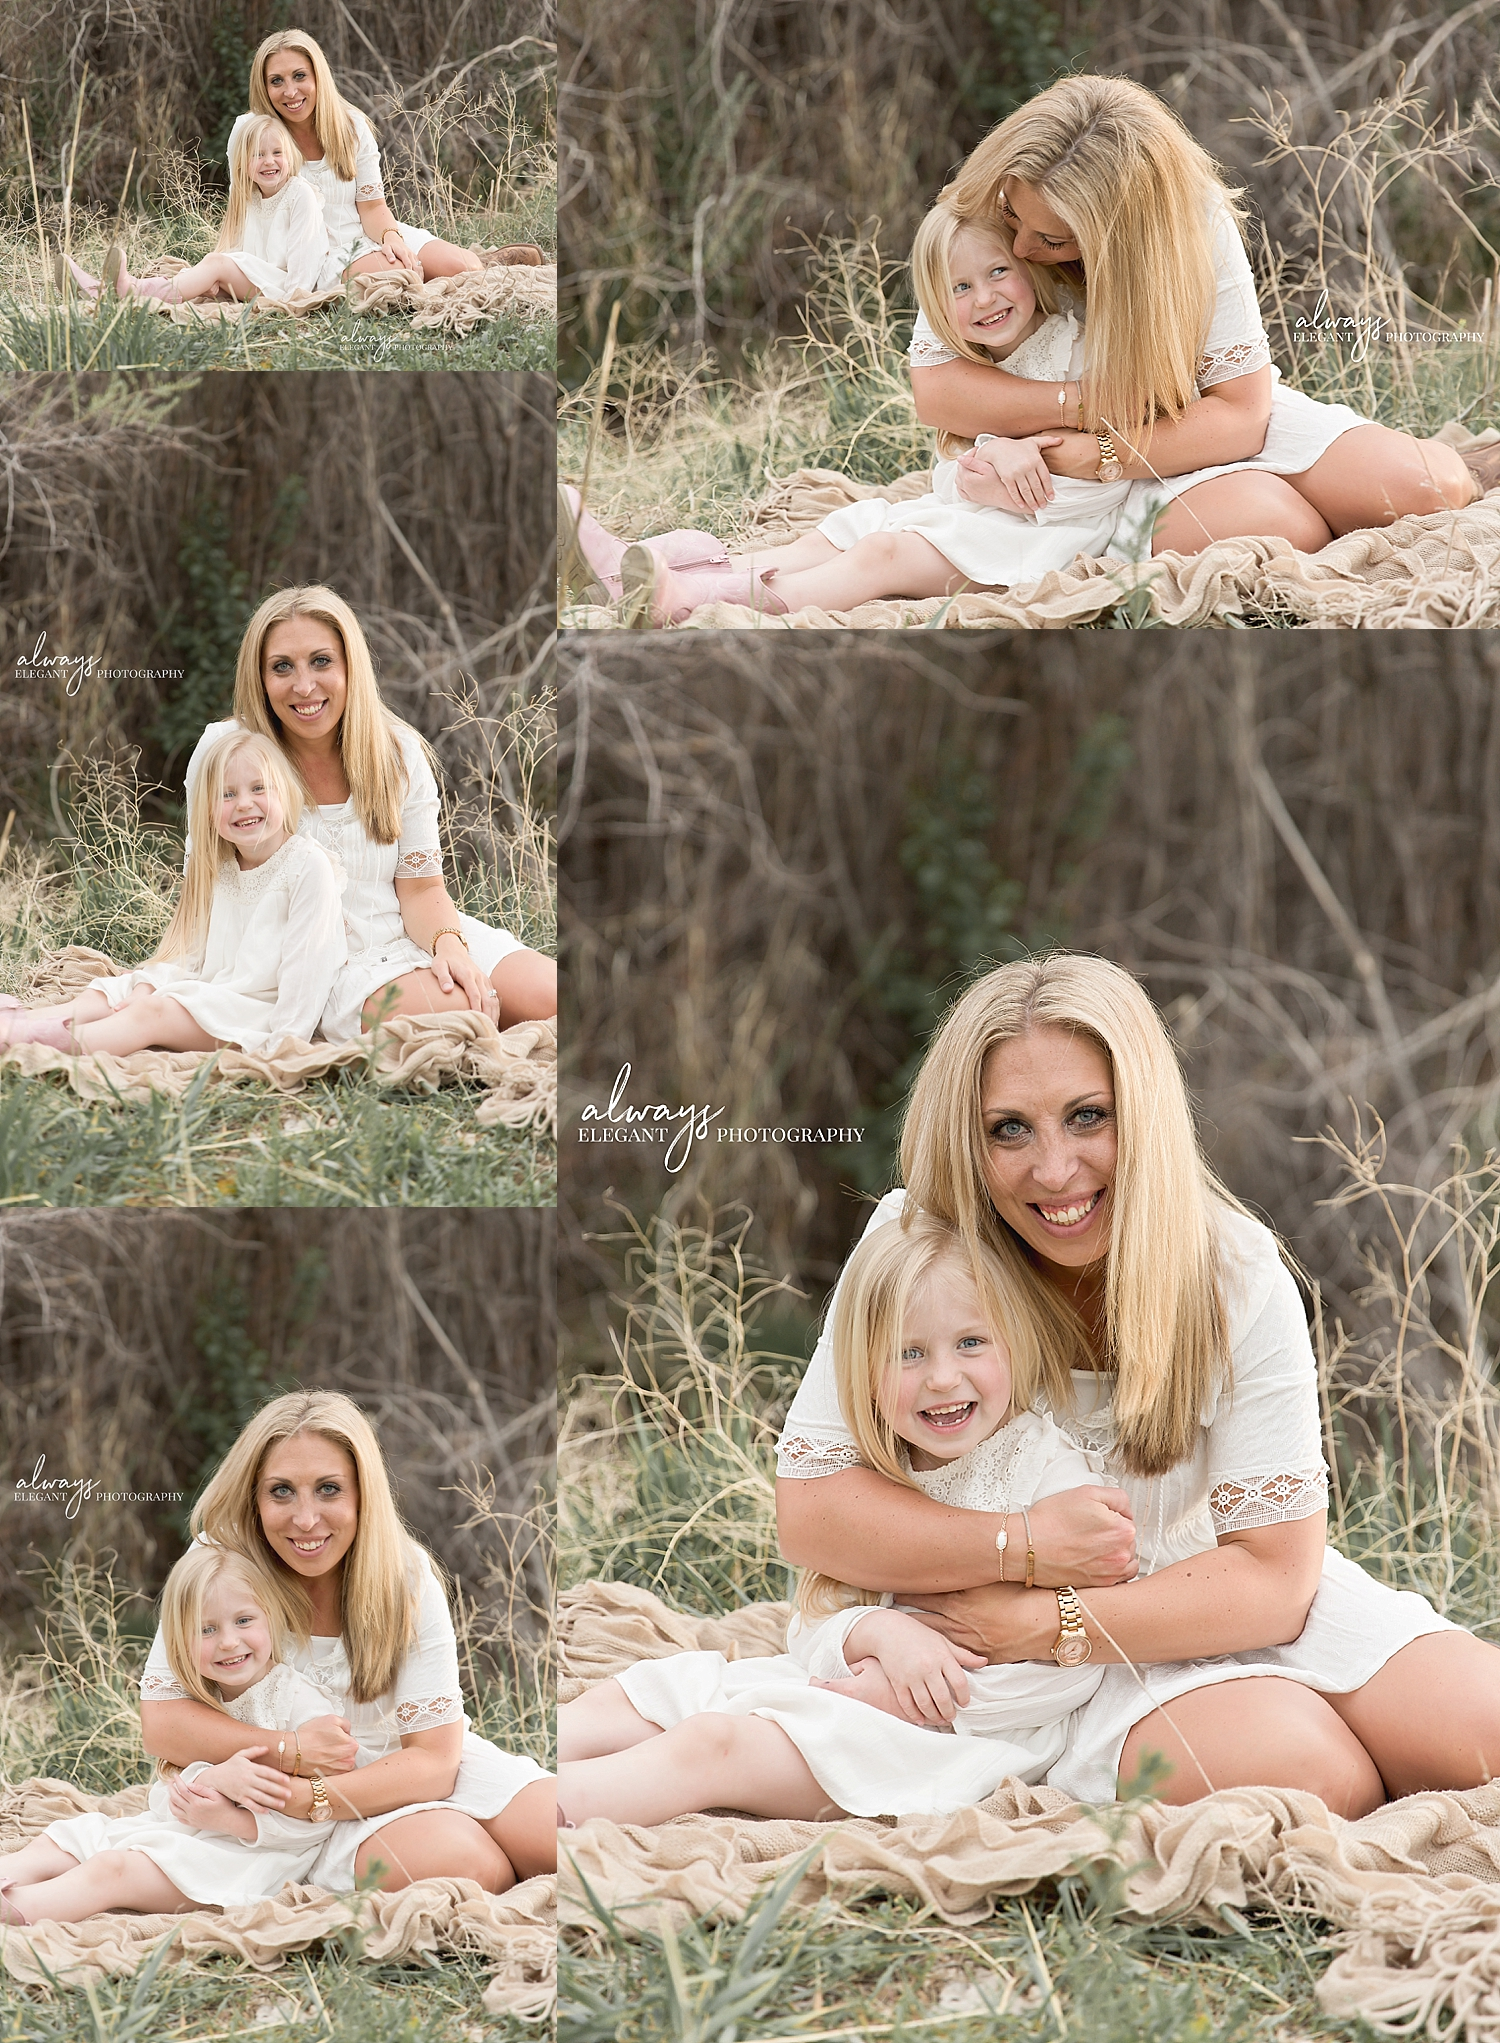 A_Motherhood_Event_Mommy_And_Me_Mini_Session_0018.jpg